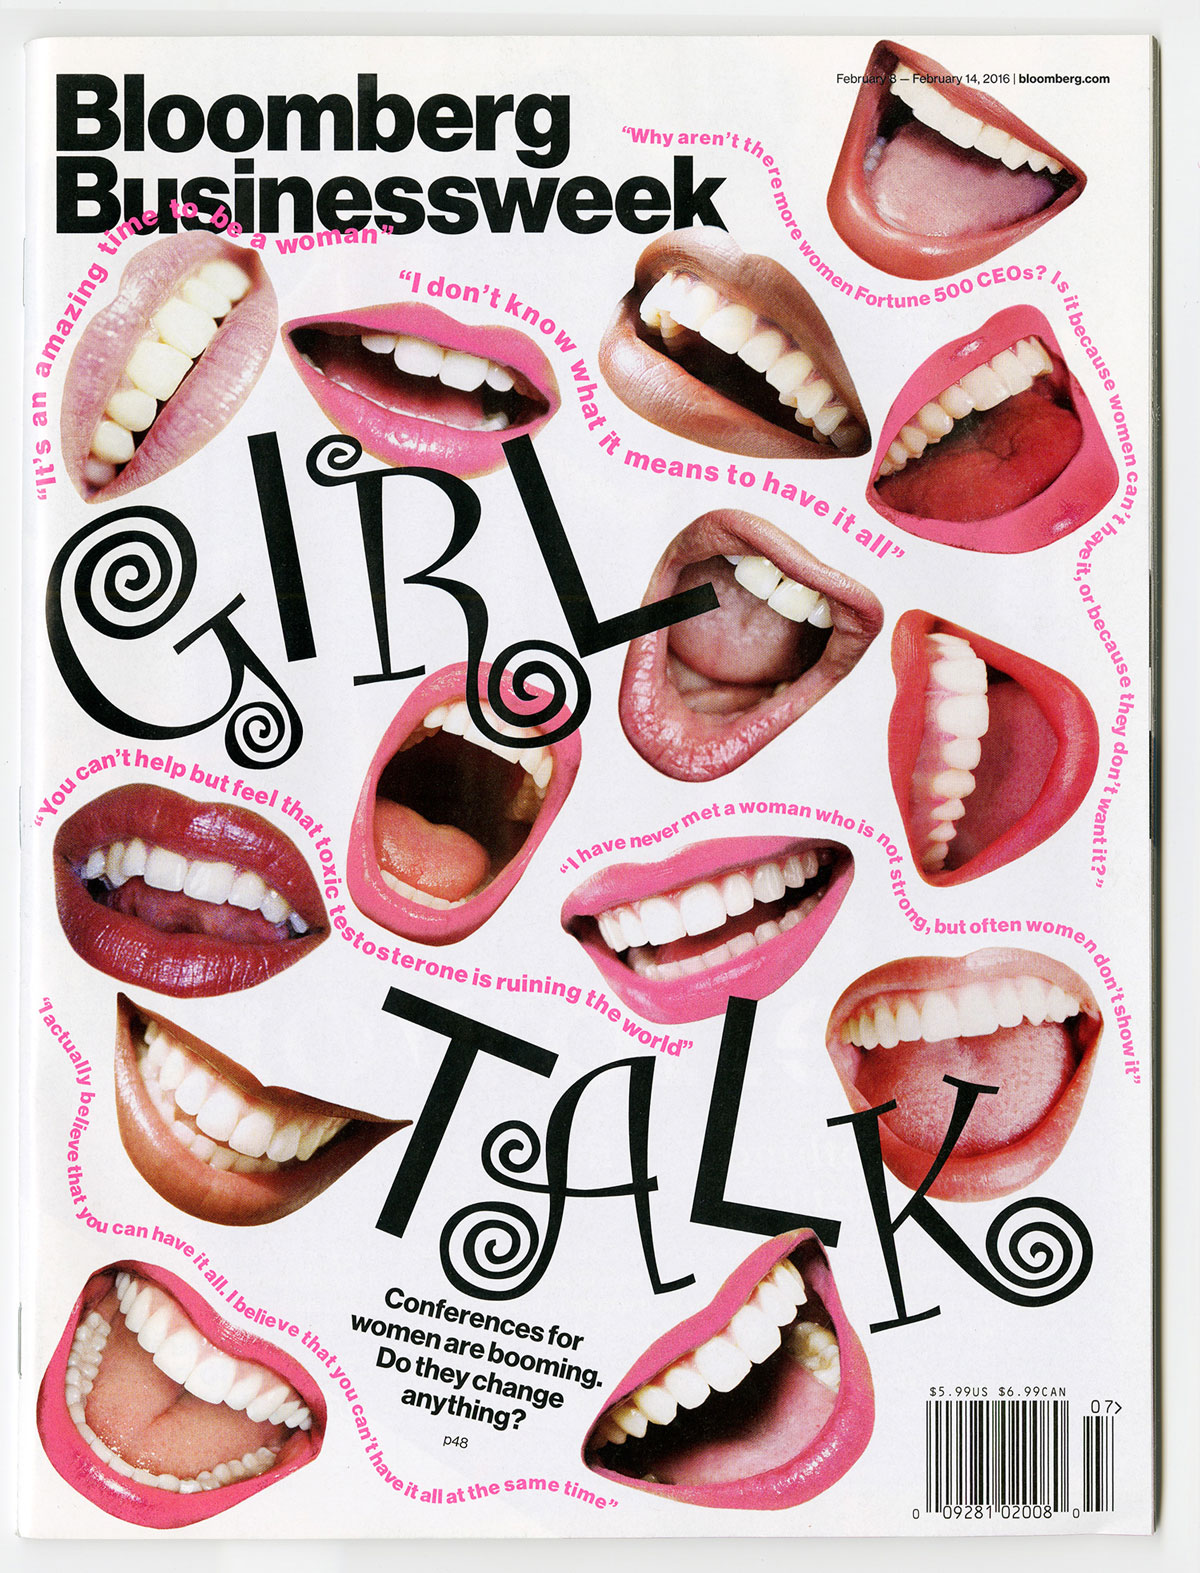 Cover design by Tracy Ma for  Businessweek's  February 8-14, 2016 issue